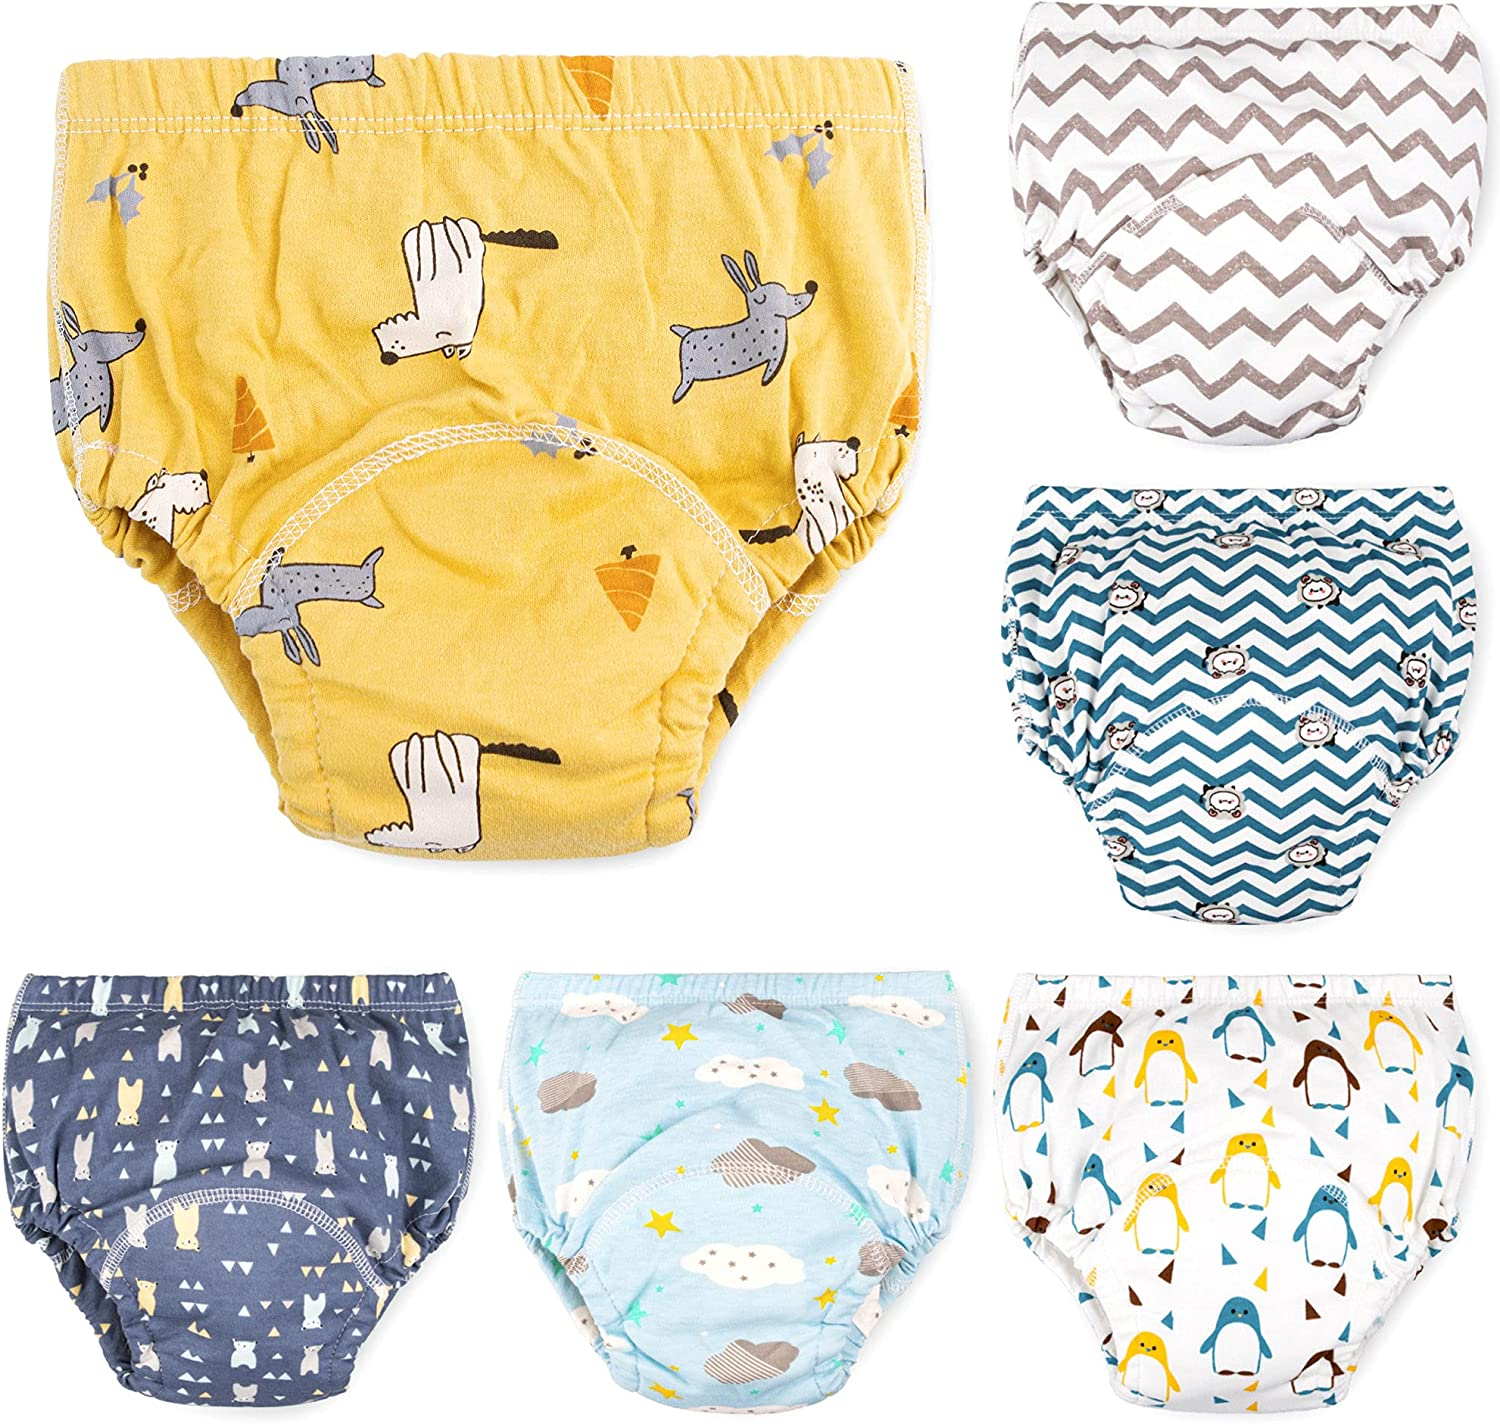 6 Pack Potty Training Pants for Boys,Max Shape Potty Training Underwear for Boys 2T,3T,4T